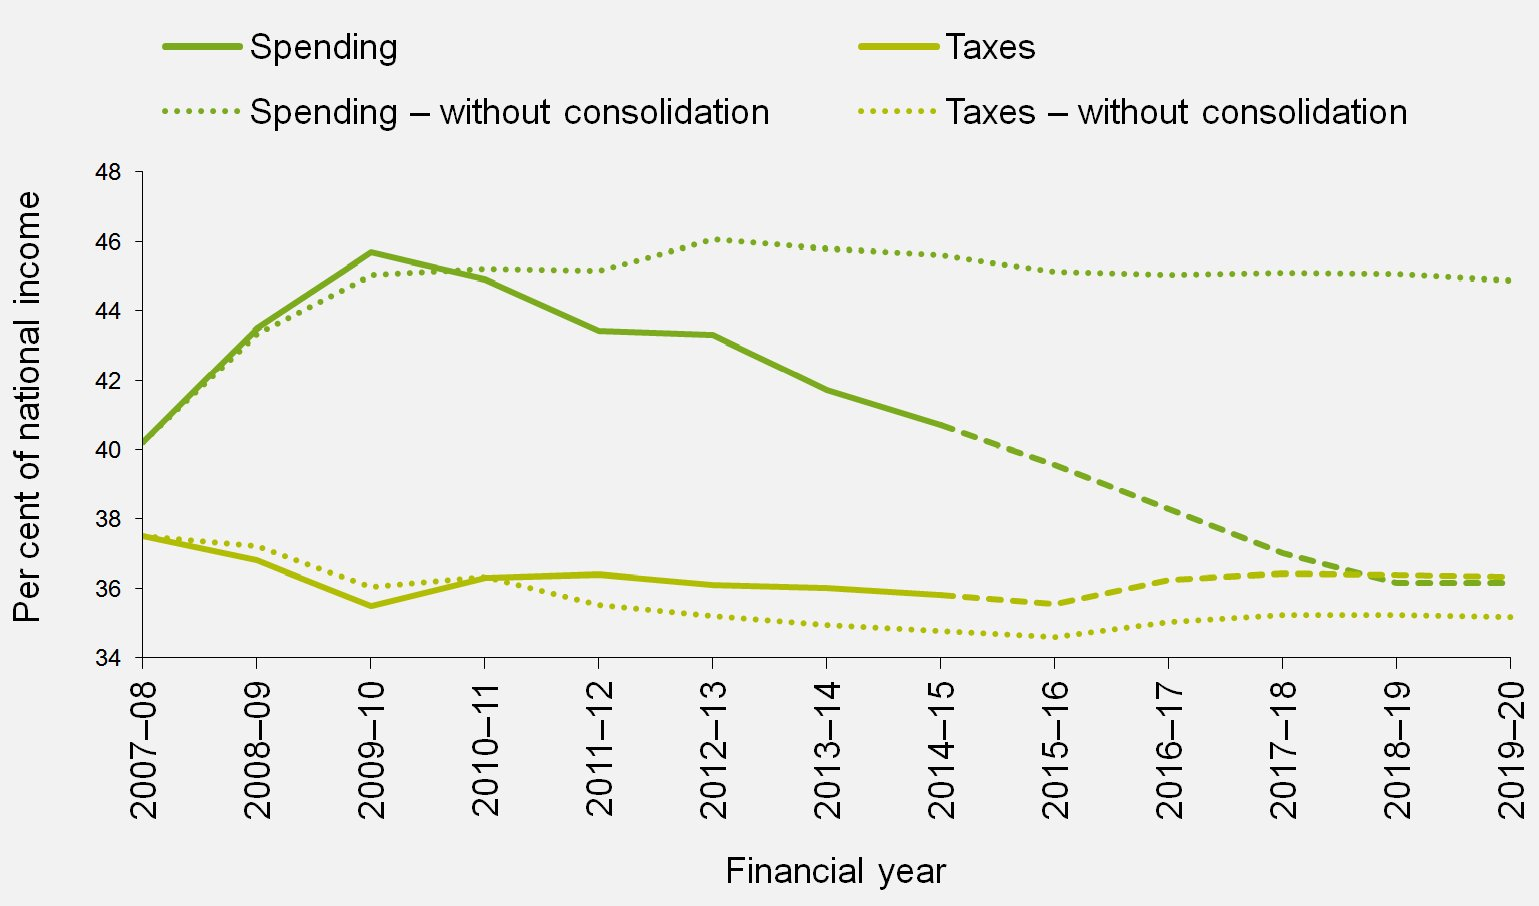 Taxes and spending as a share of national income, with and without fiscal consolidation